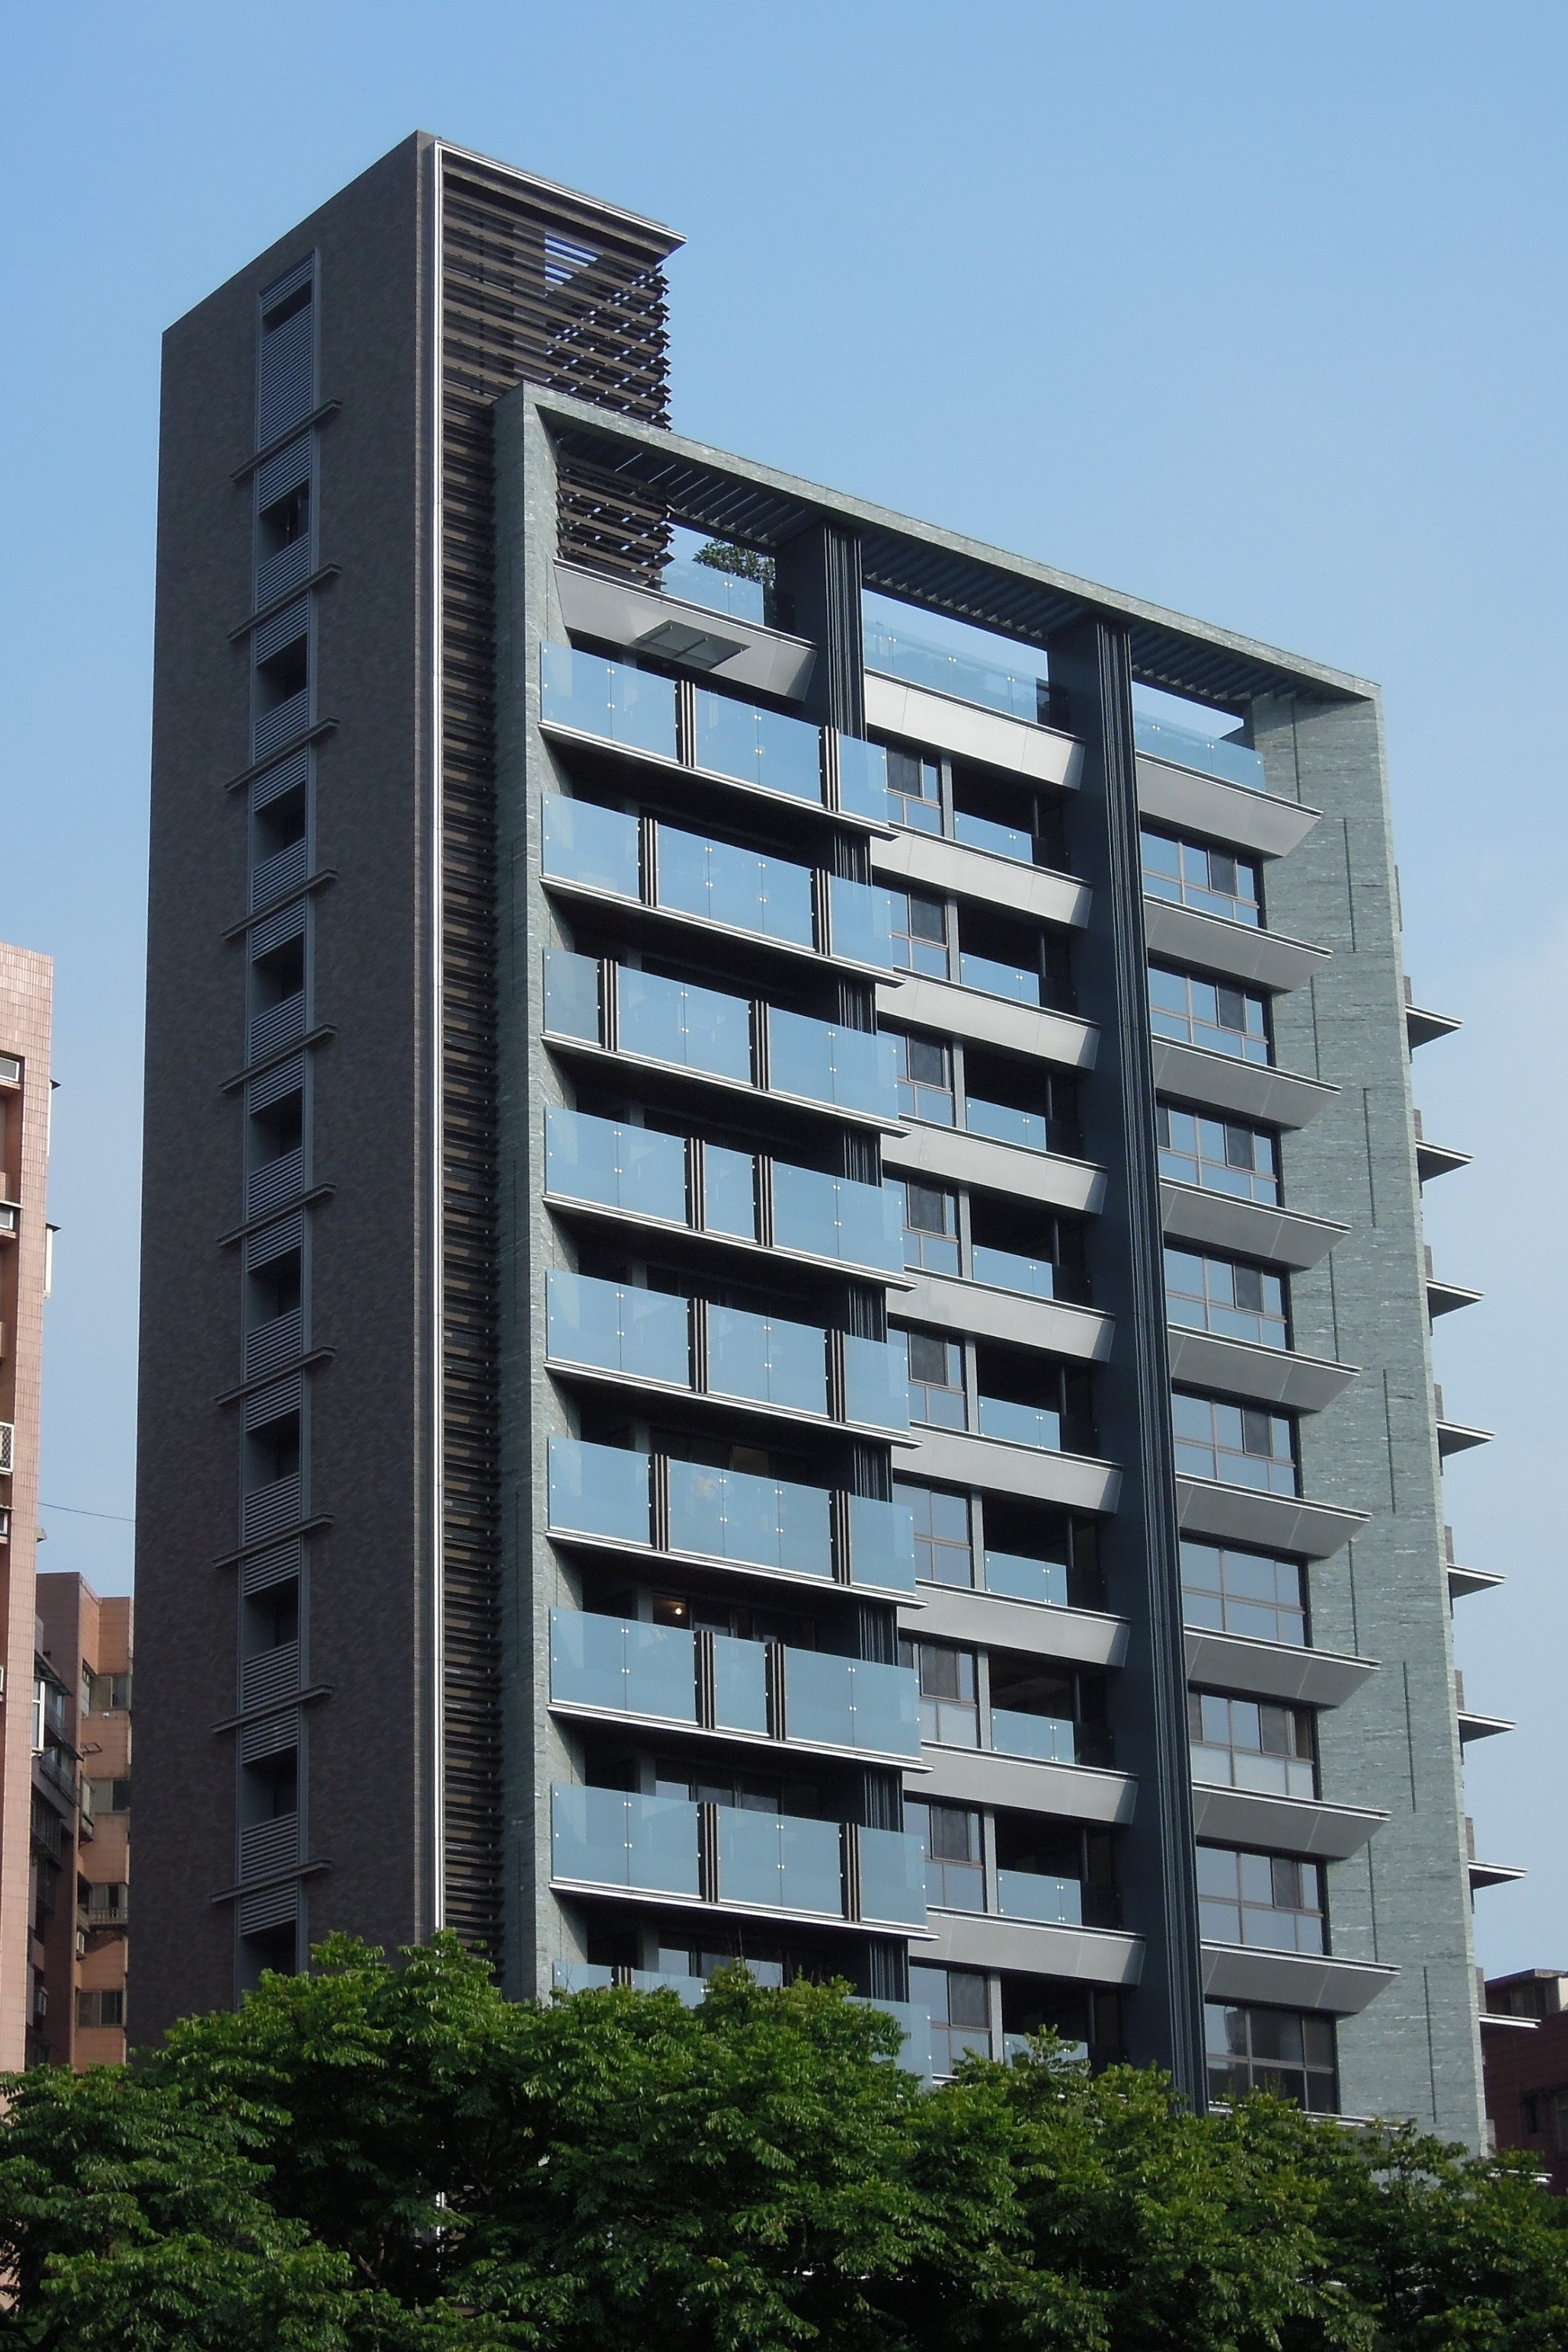 Condominium for Sale at Arana Residence Sec. 1, Zhongcheng Rd., Shilin Dist. Taipei City, 111 Taiwan